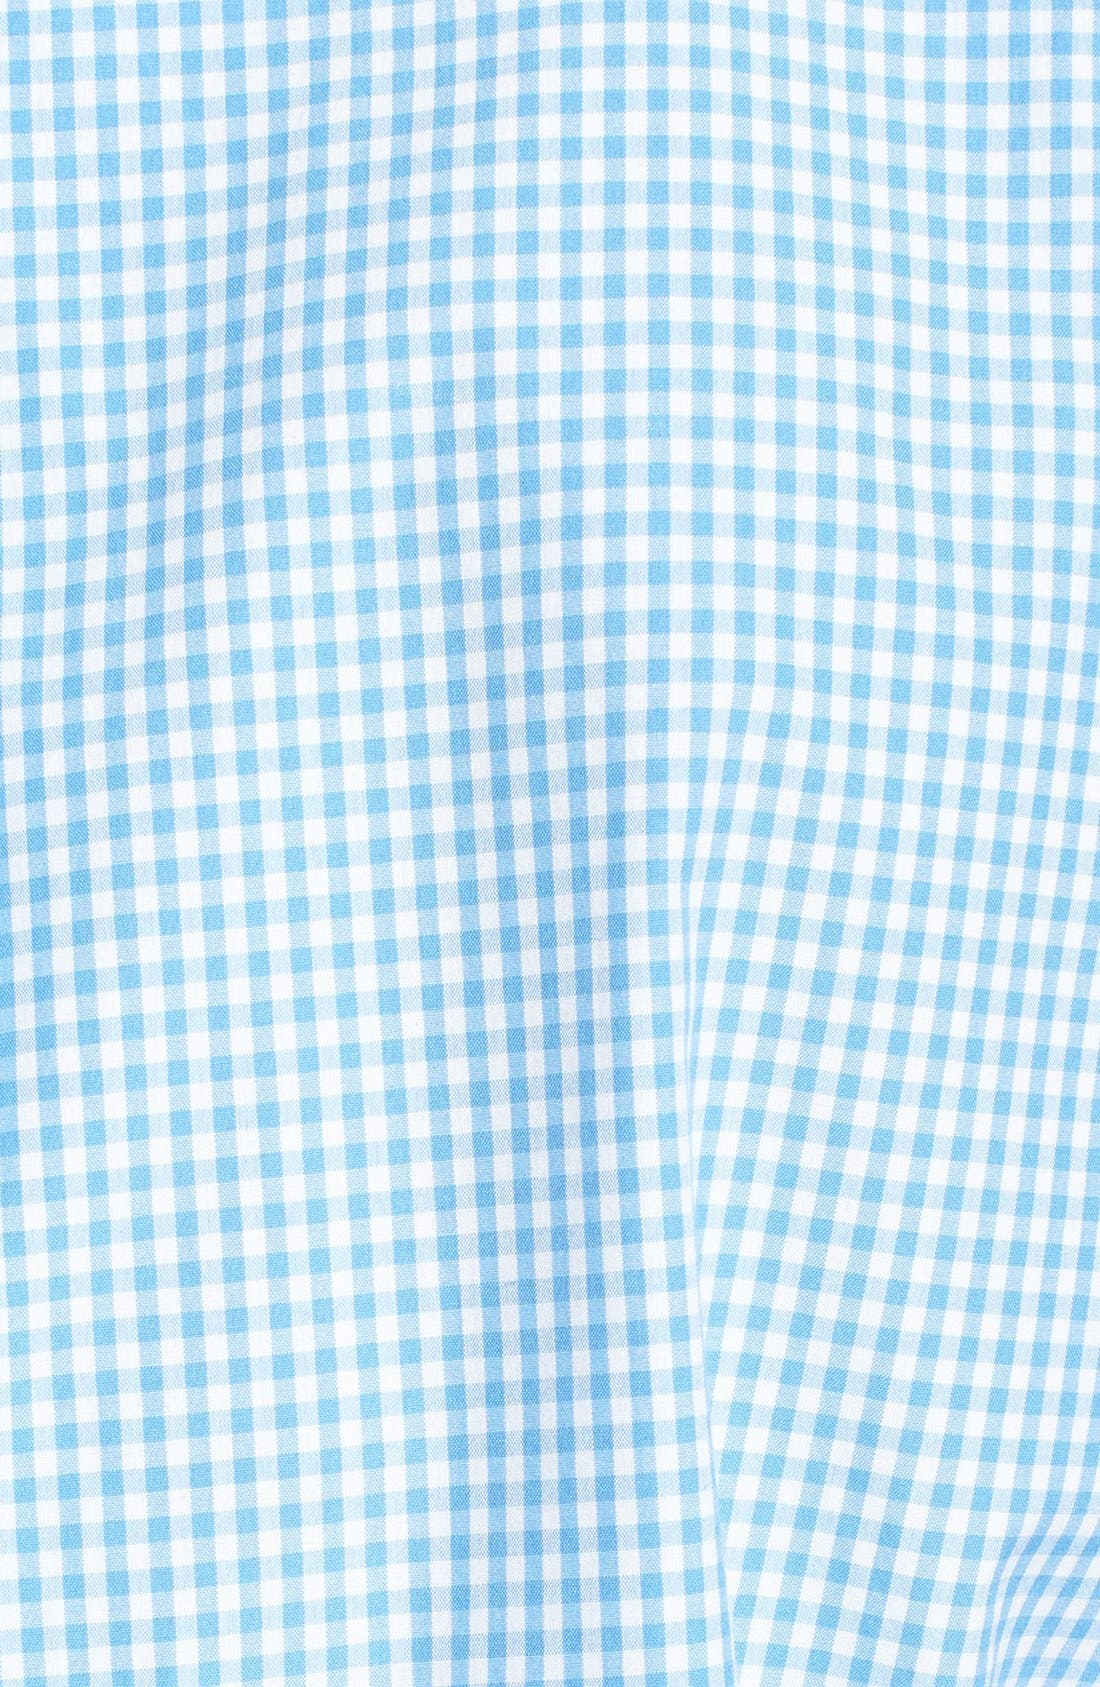 Alternate Image 3  - Vineyard Vines 'Whale' Classic Fit Check Poplin Sport Shirt